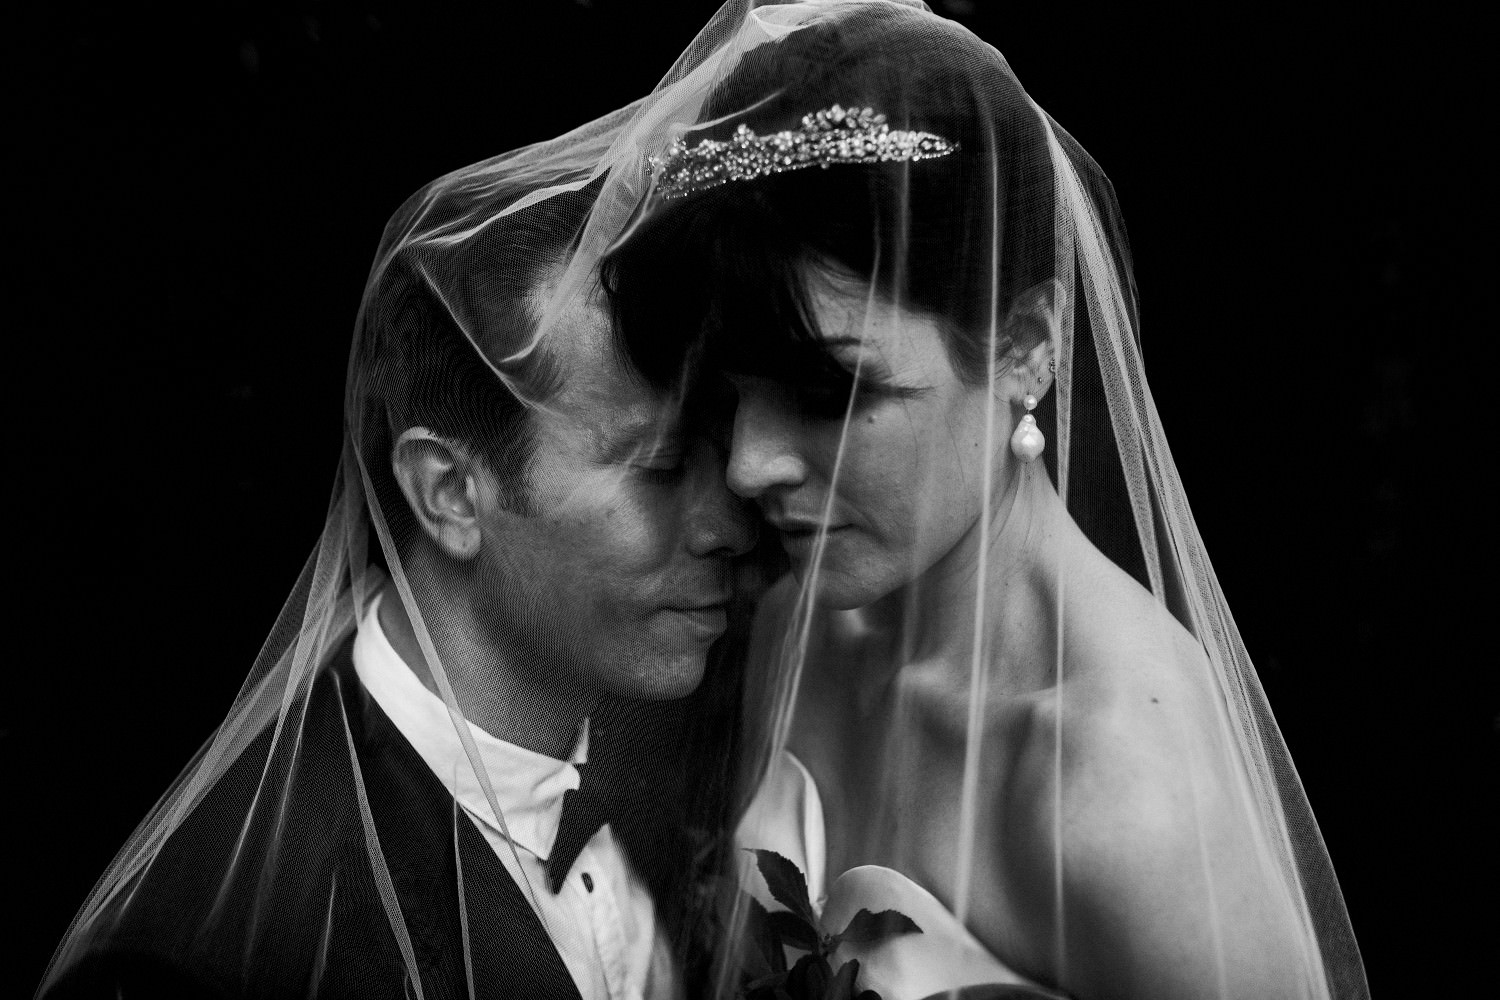 Wedding at the Brooklyn Botanic - black and white photograph of couple under veil